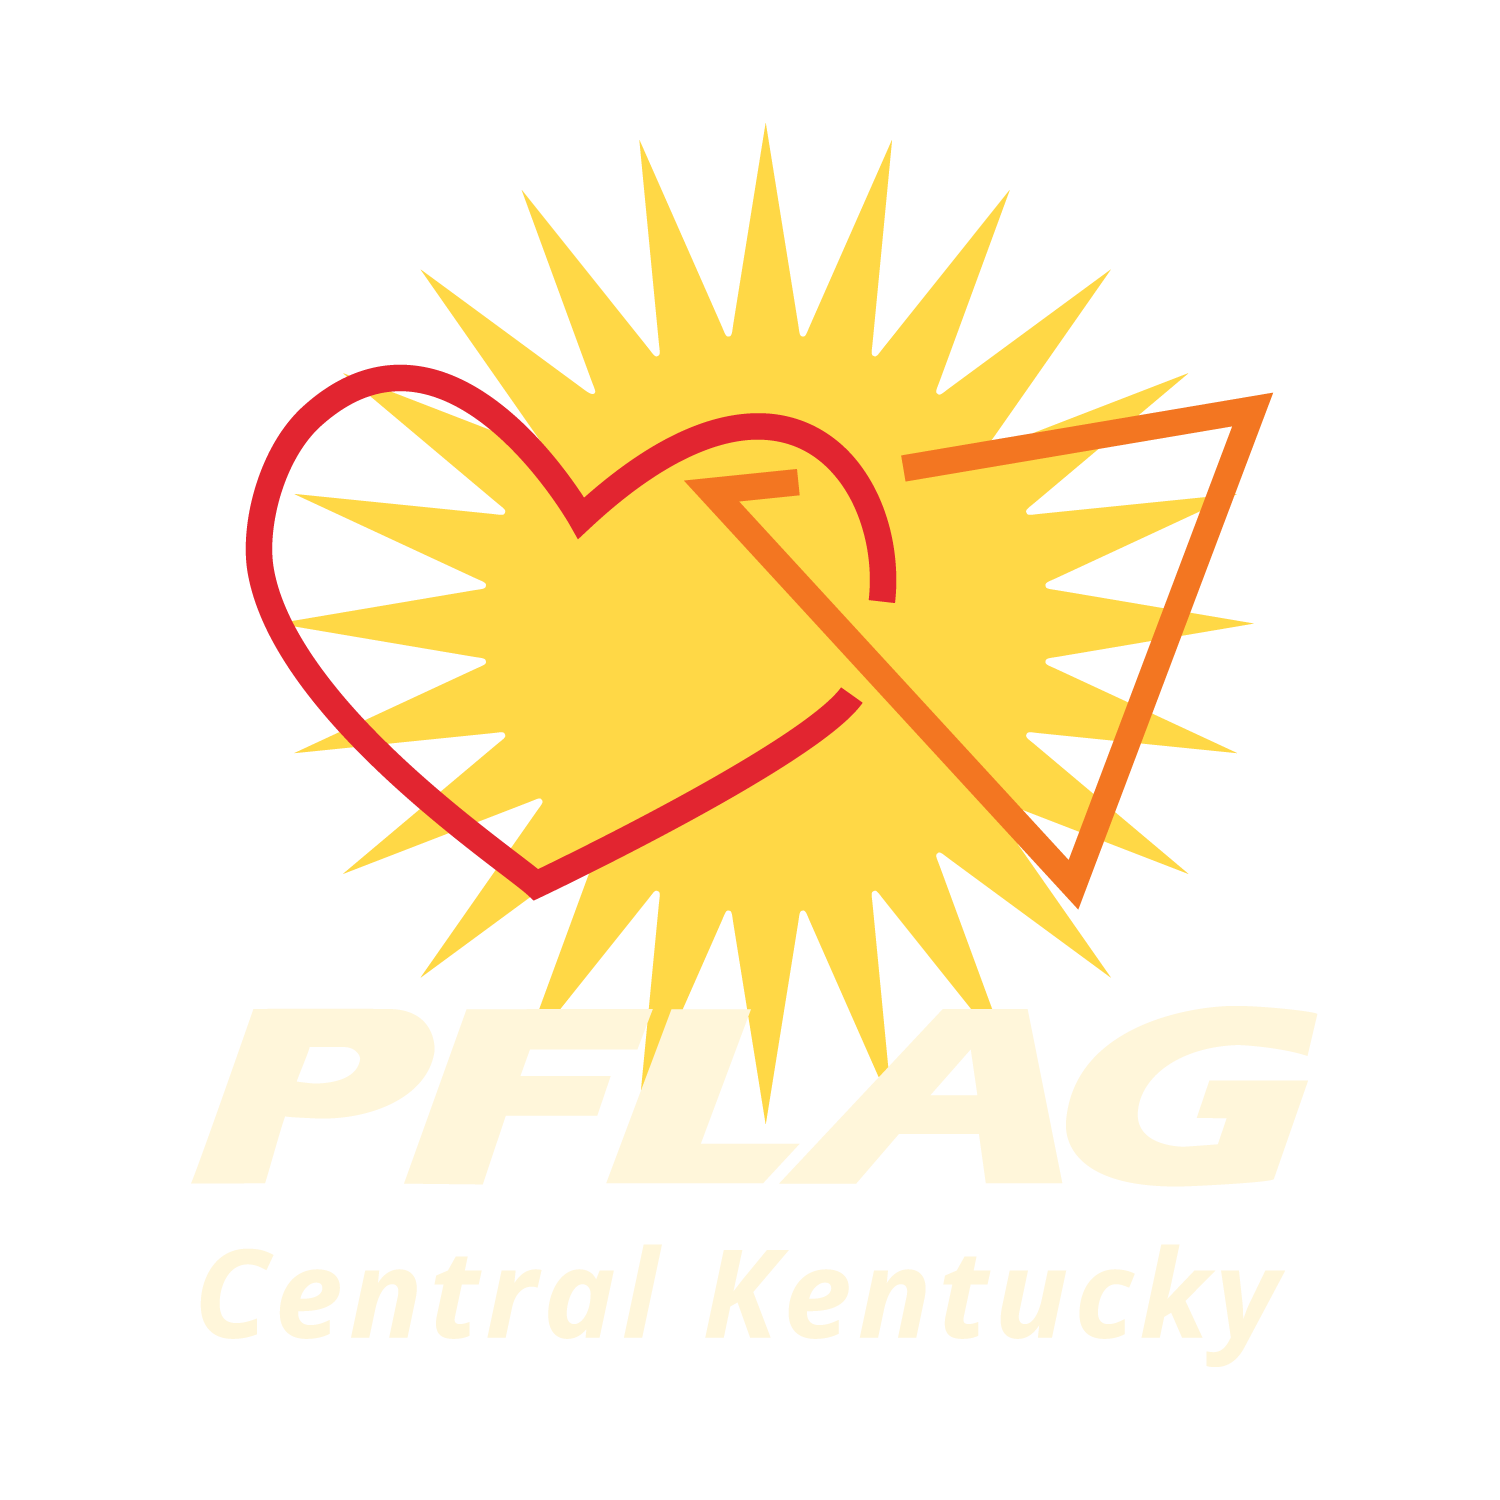 PFLAG of Central Kentucky